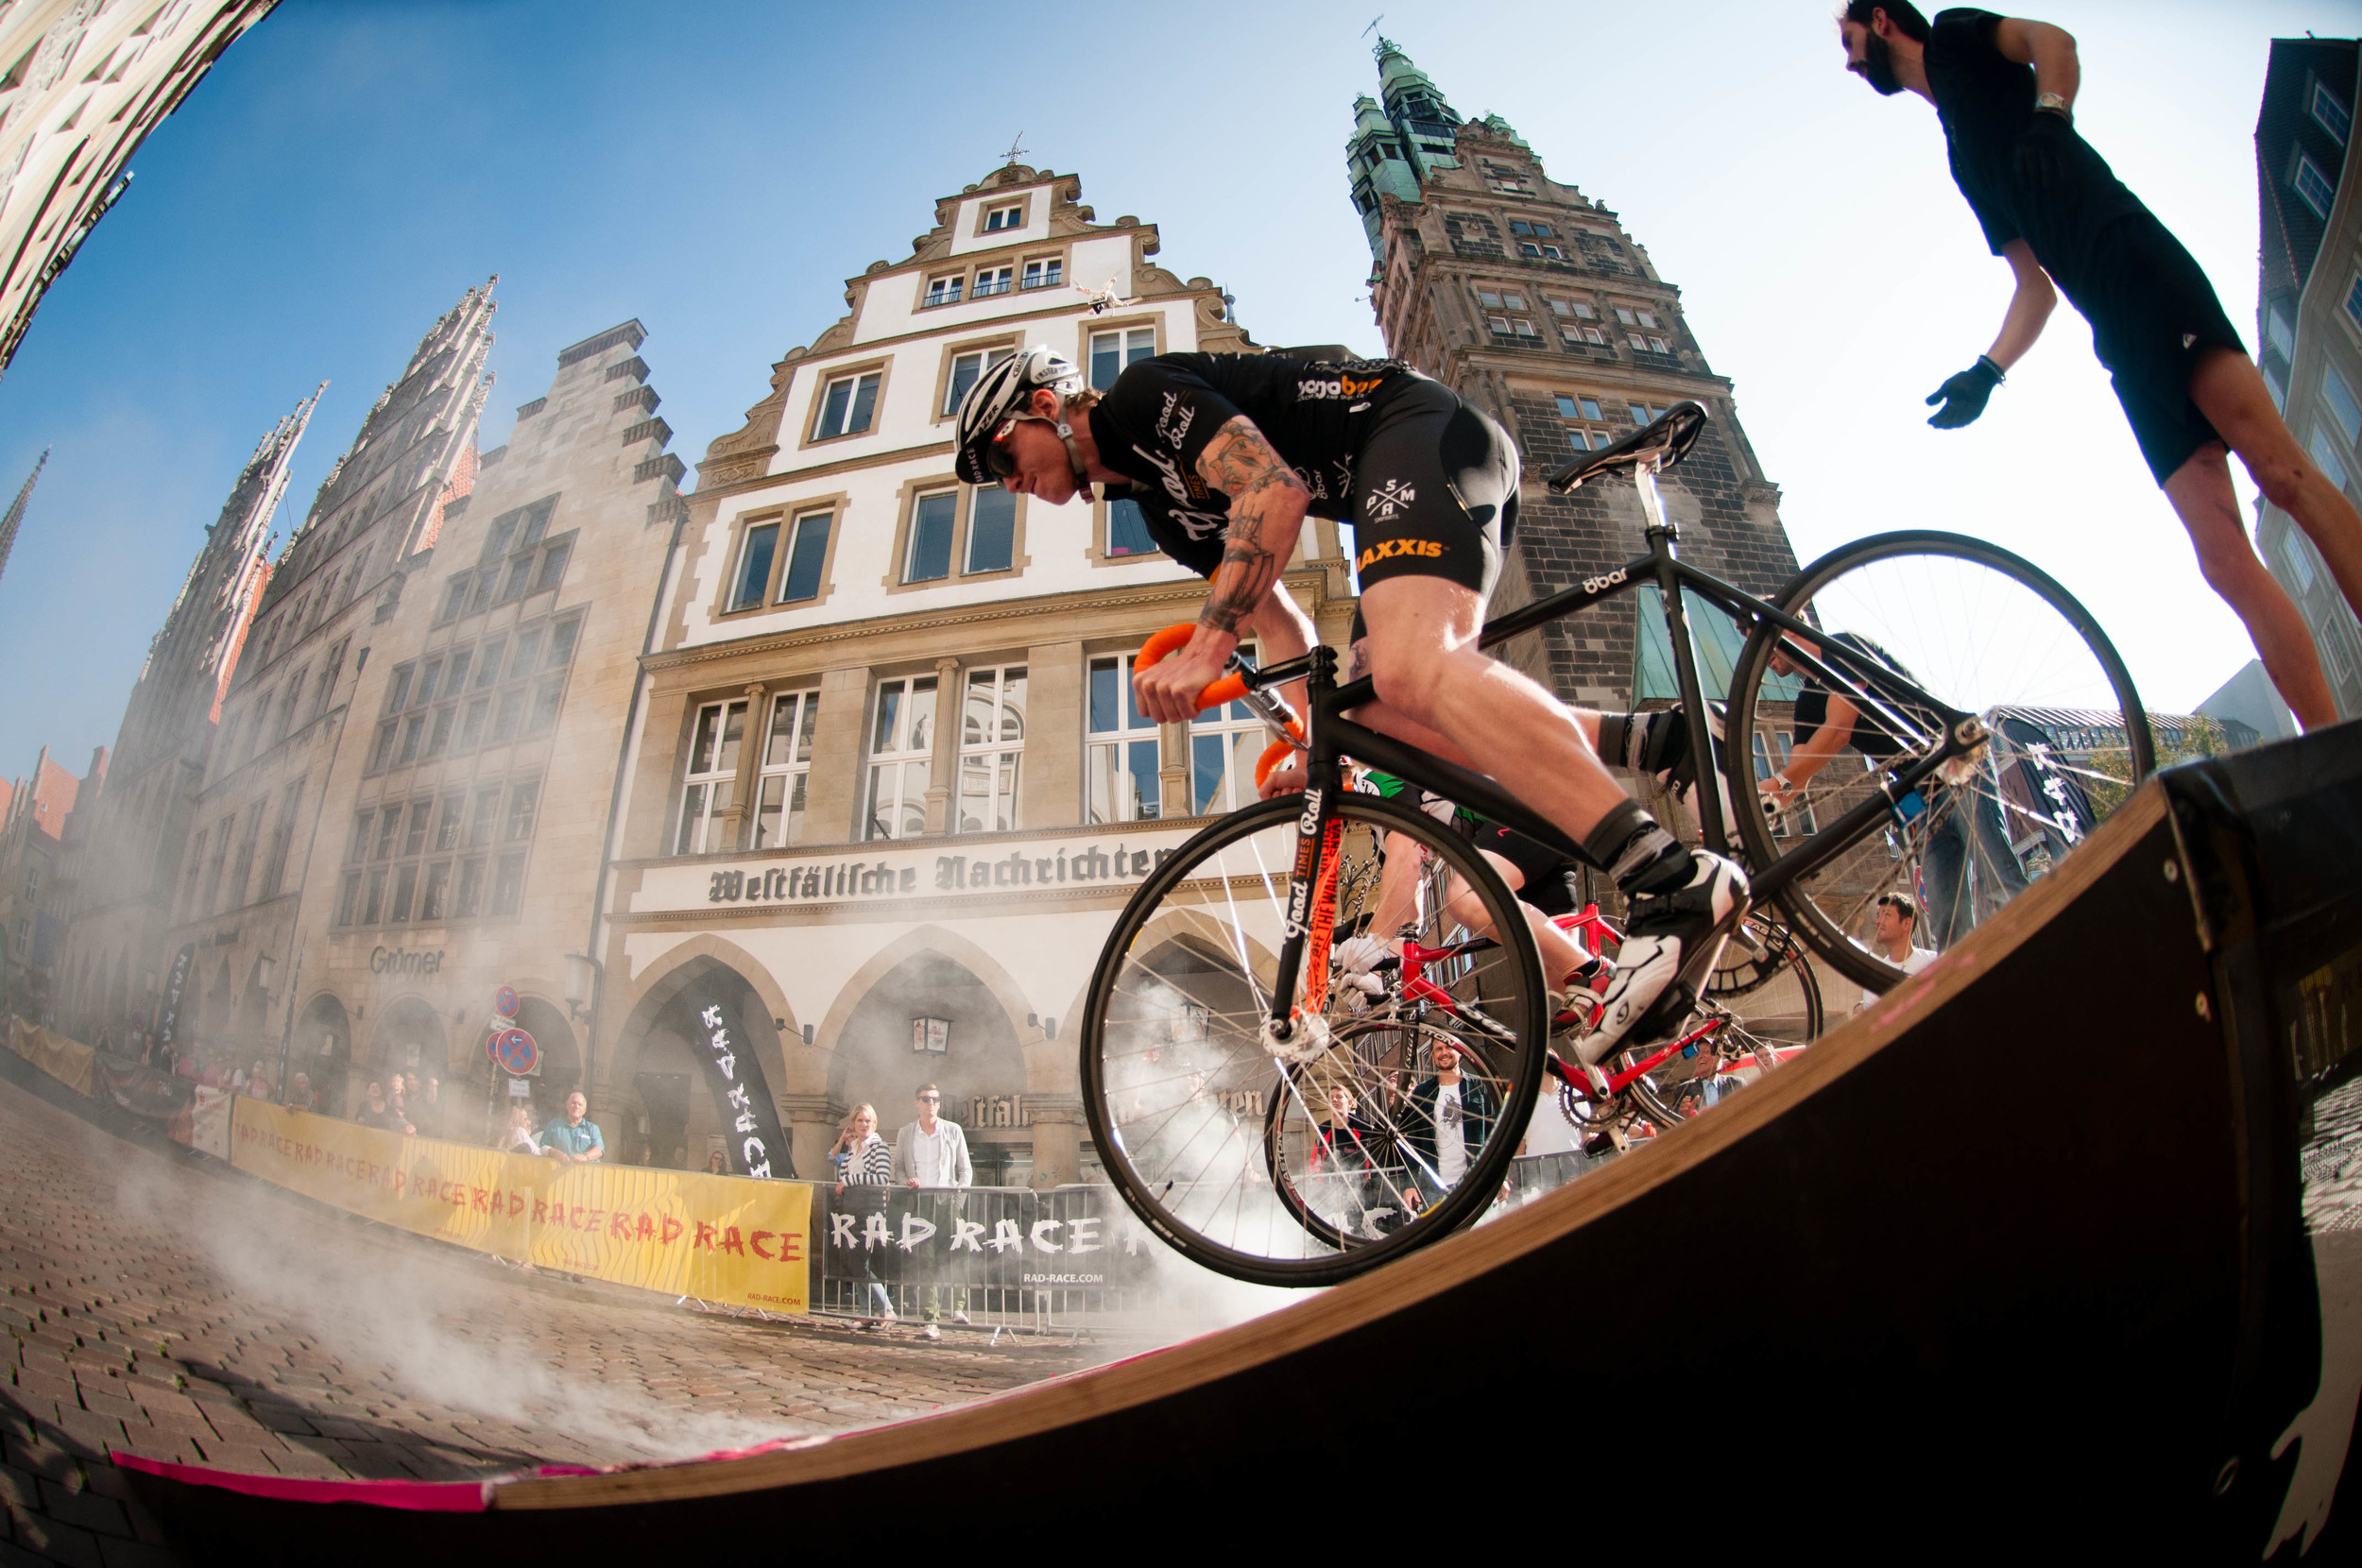 RAD RACE BATTLE MÜNSTER // Pic by Martin Donat SPOKEMAG